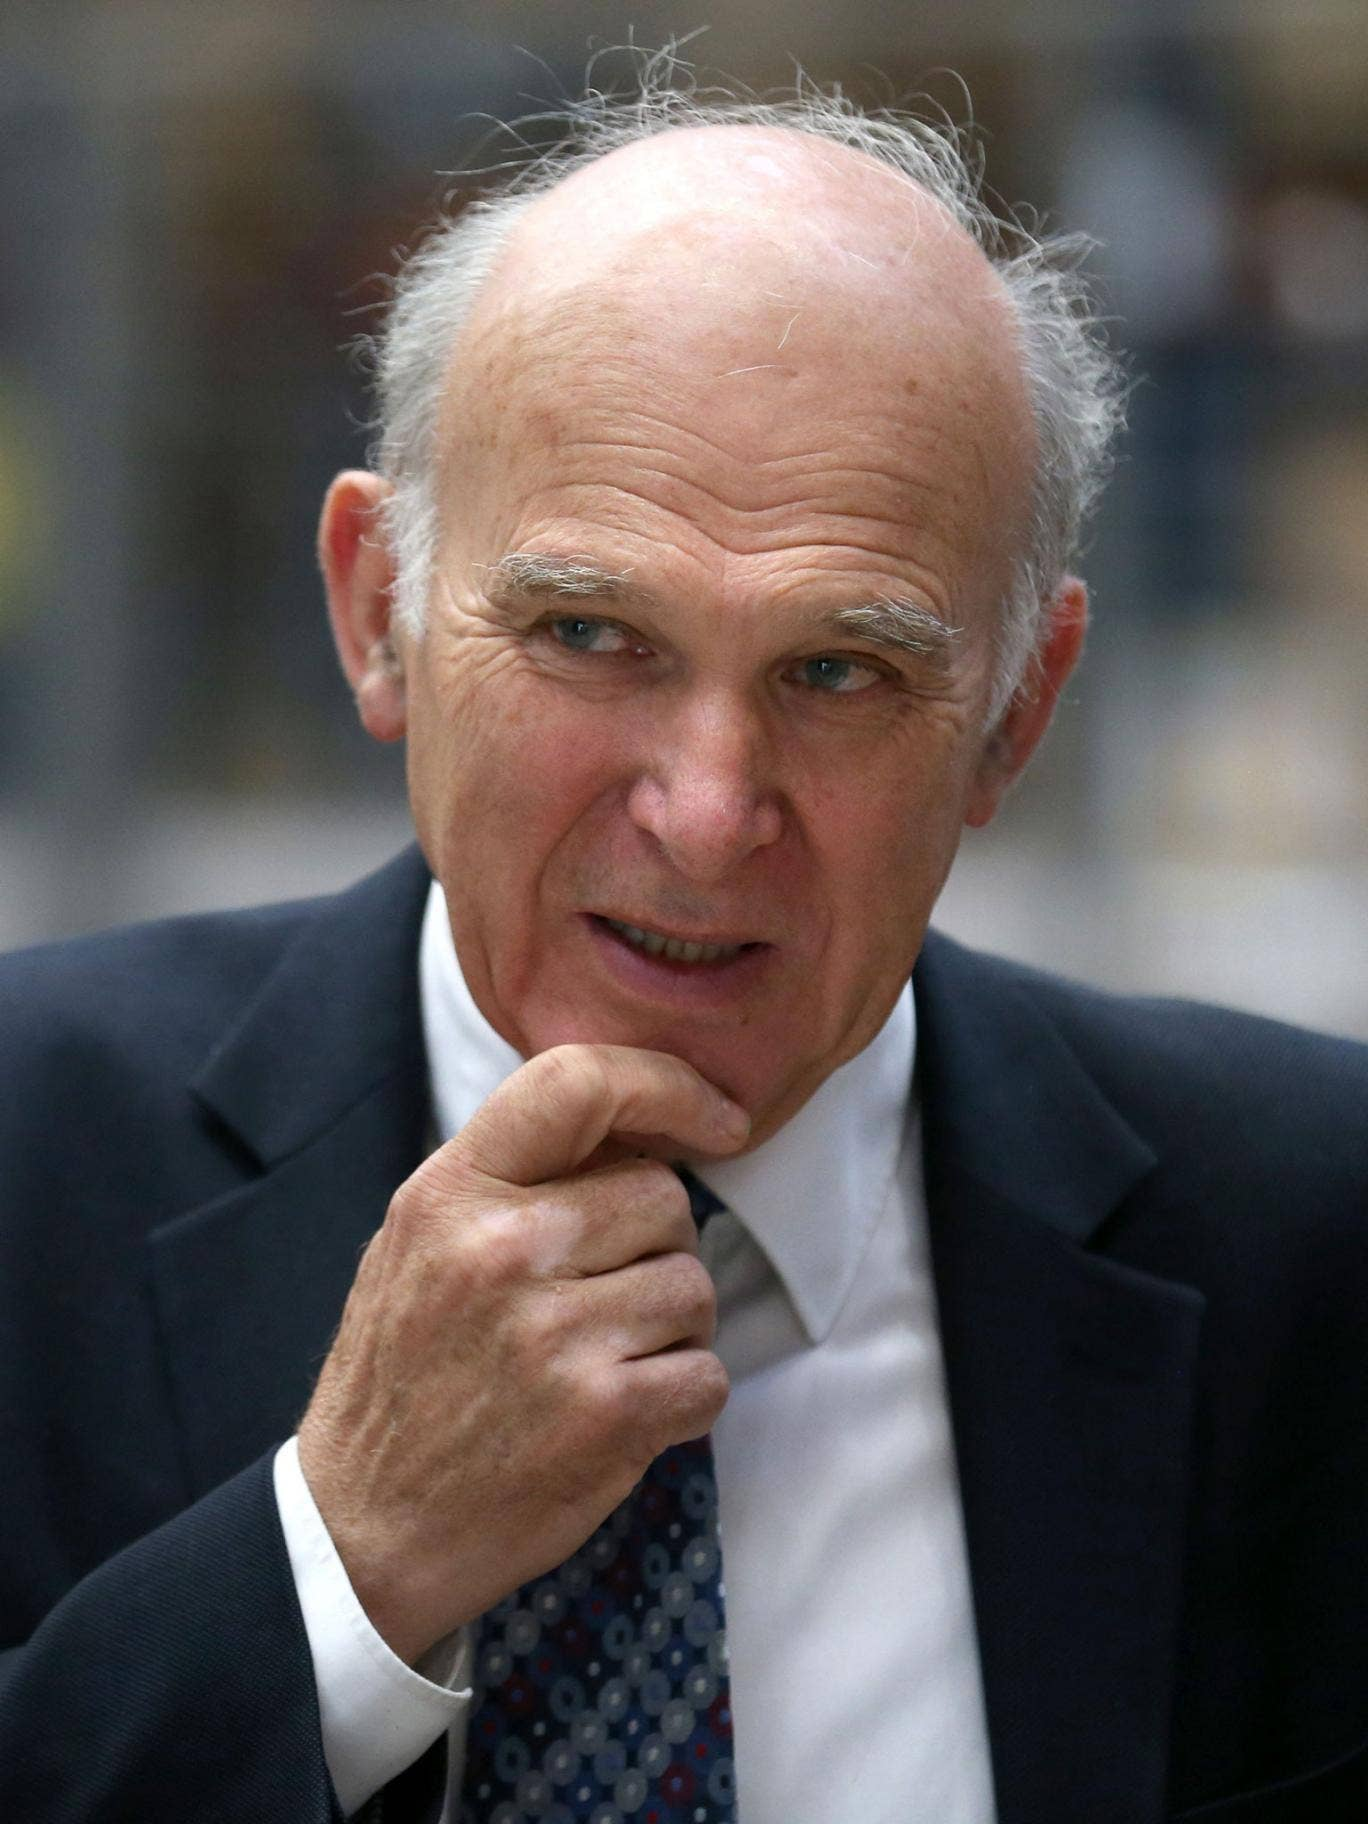 Business Secretary Vince Cable has been accused of providing contradictory evidence to MPs